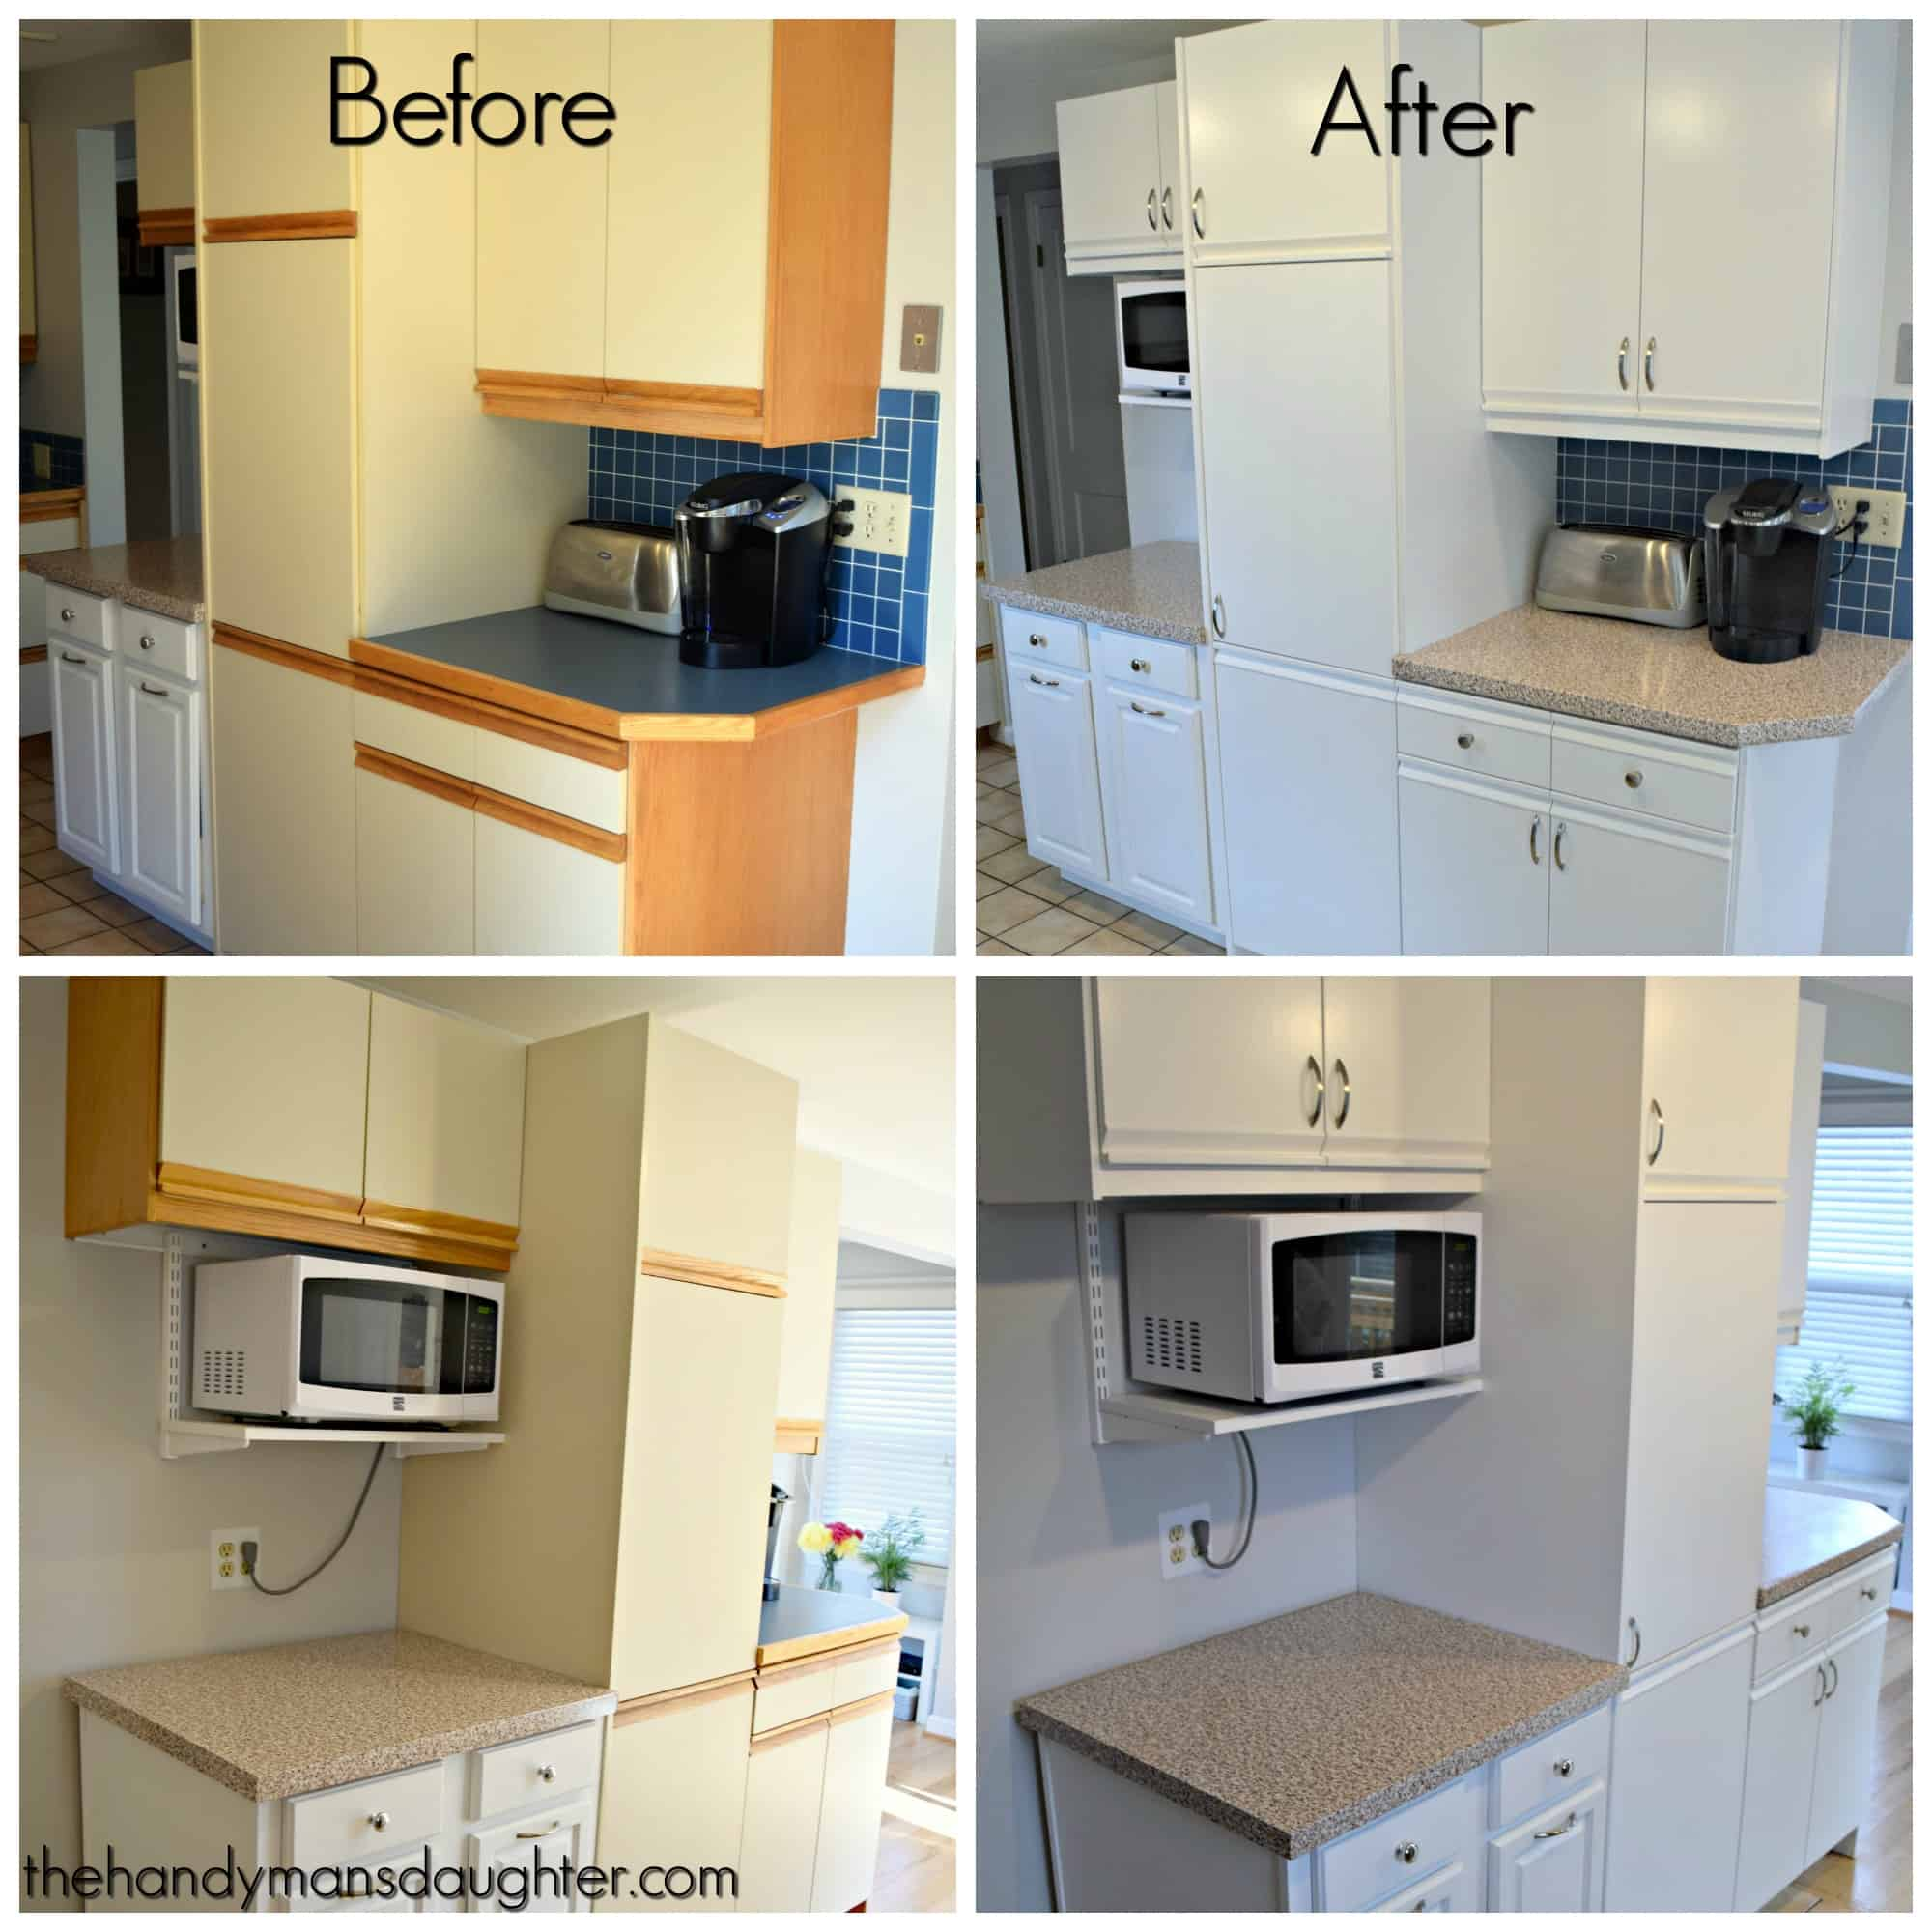 kitchen trim cabinets amish tips for updating melamine with oak the handyman s before and after grid of photos showing painted